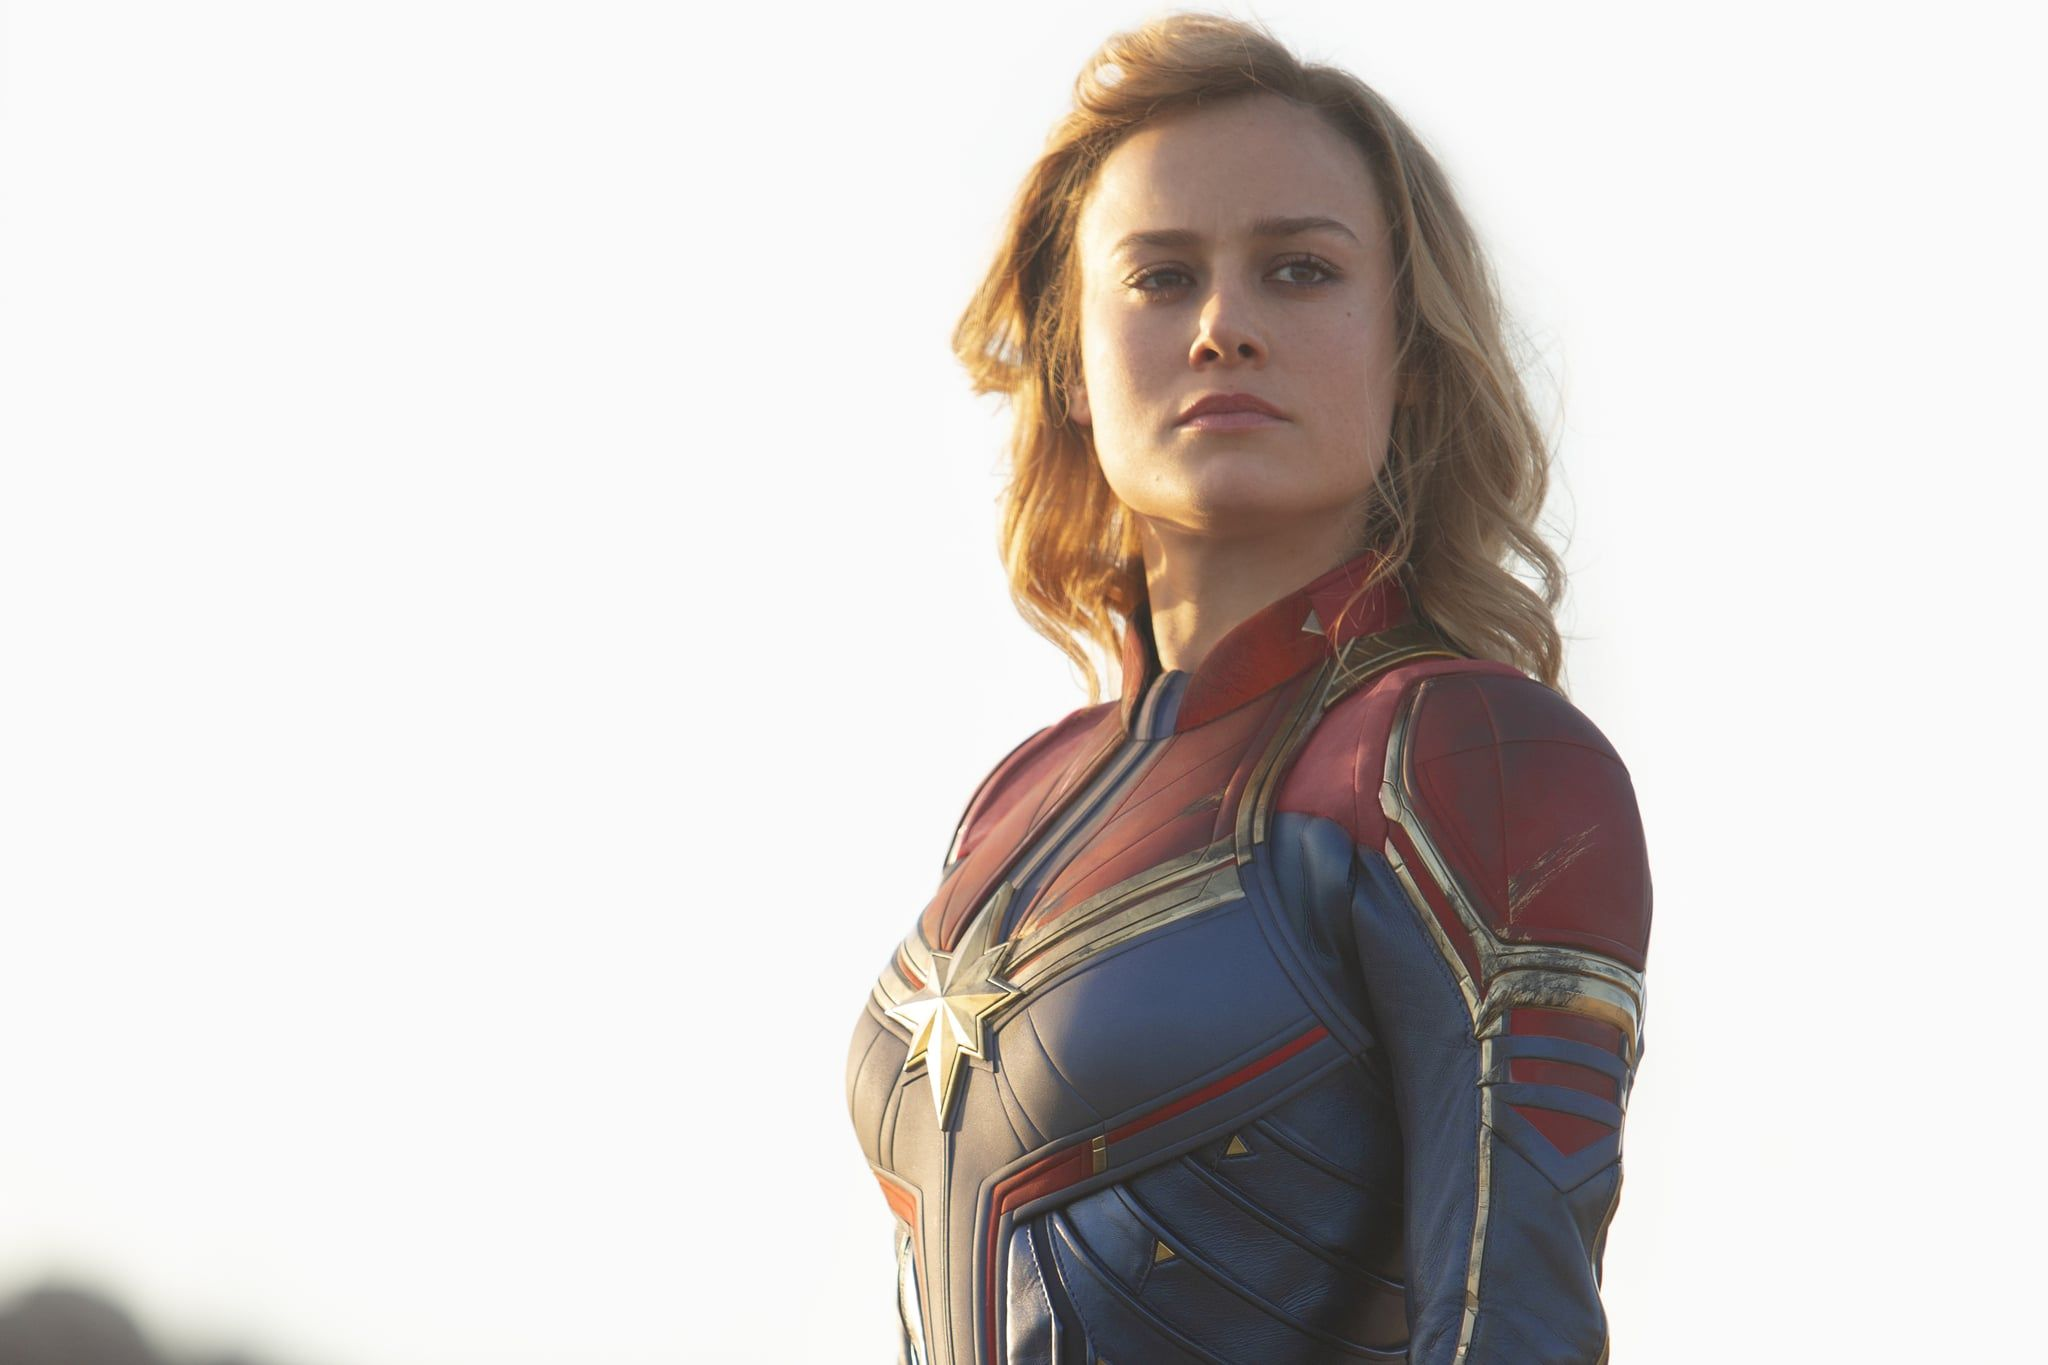 Capitana Marvel (Brie Larson) Martillo Thor Instagram - Marvel